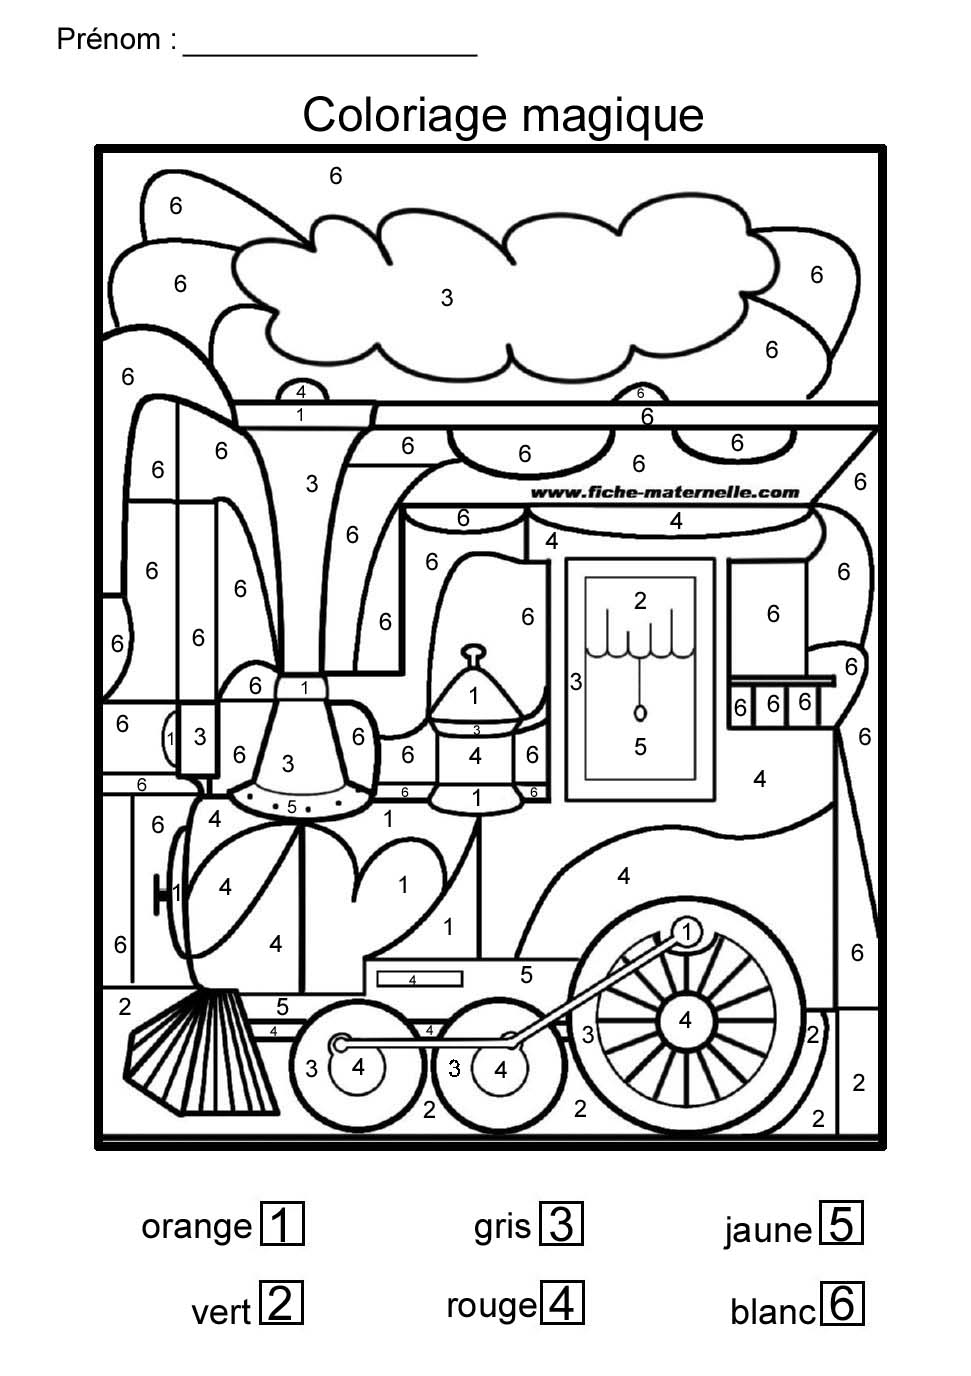 Coloriage Code Grande Section.Coloriage Magique Pour Moyenne Section Et Grande Section